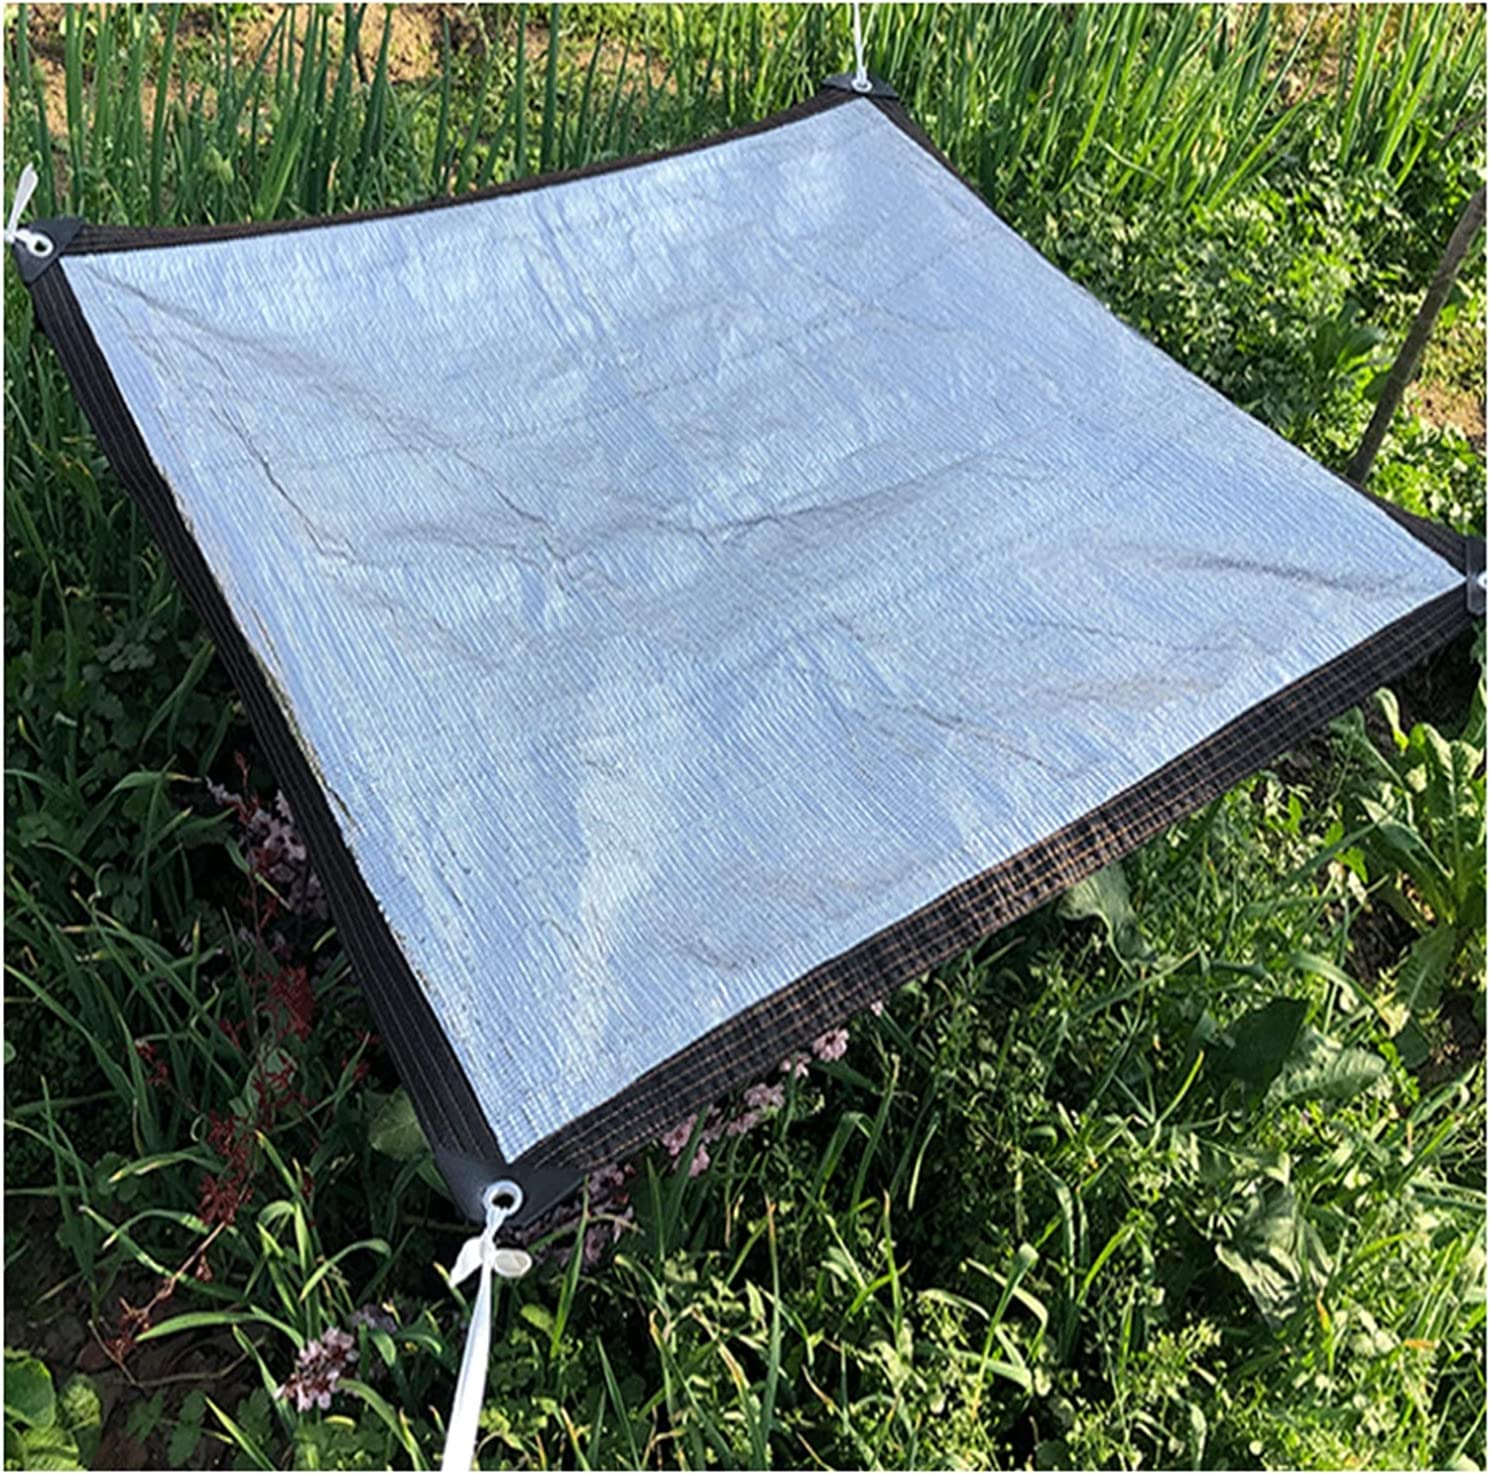 ASDQWER Shade Net Cloth Mesh He Foil Aluminum 6-Wire Quality inspection Chicago Mall